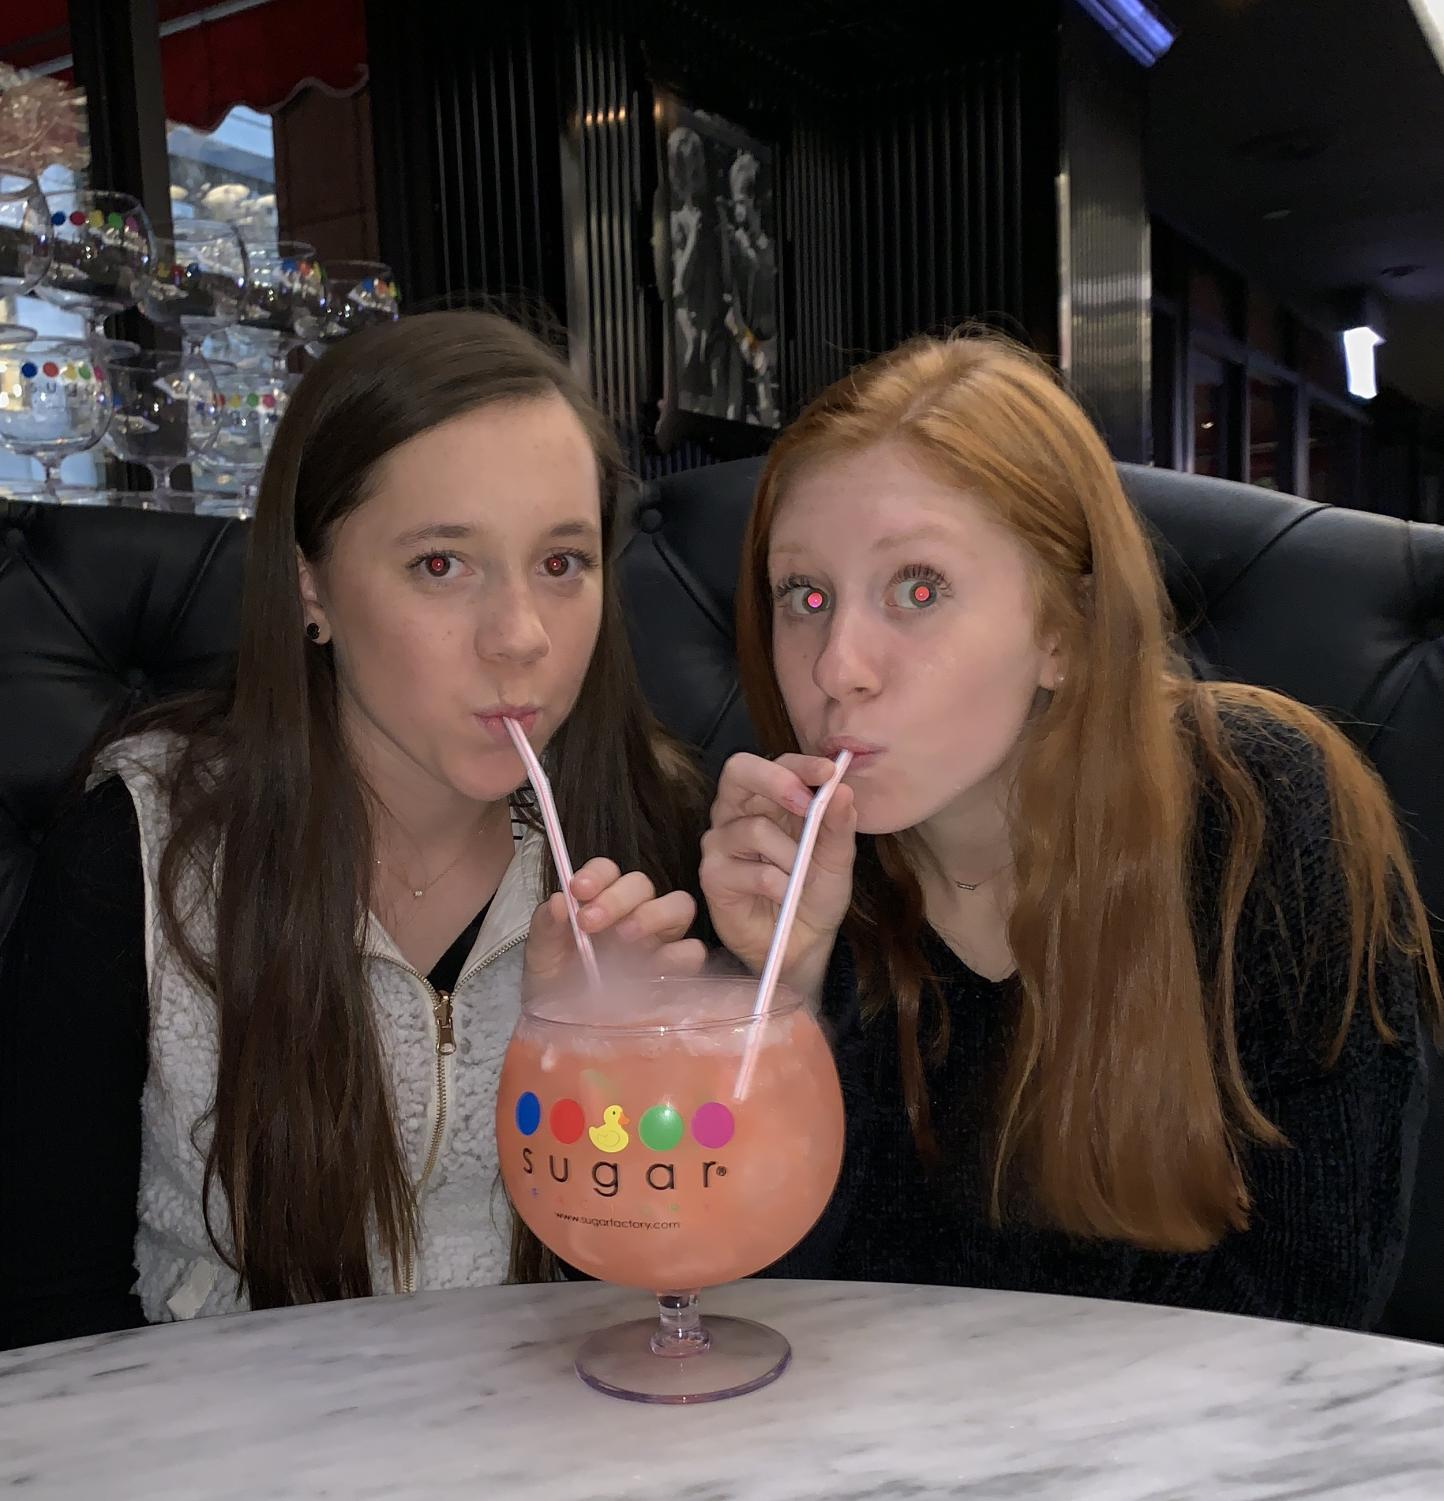 PCH Publications staff member sophomores, Sydney Stahlschmidt and Sydney Kolker, drinking The Watermelon Patch drink at The Sugar Factory during the journalism convention in Chicago.